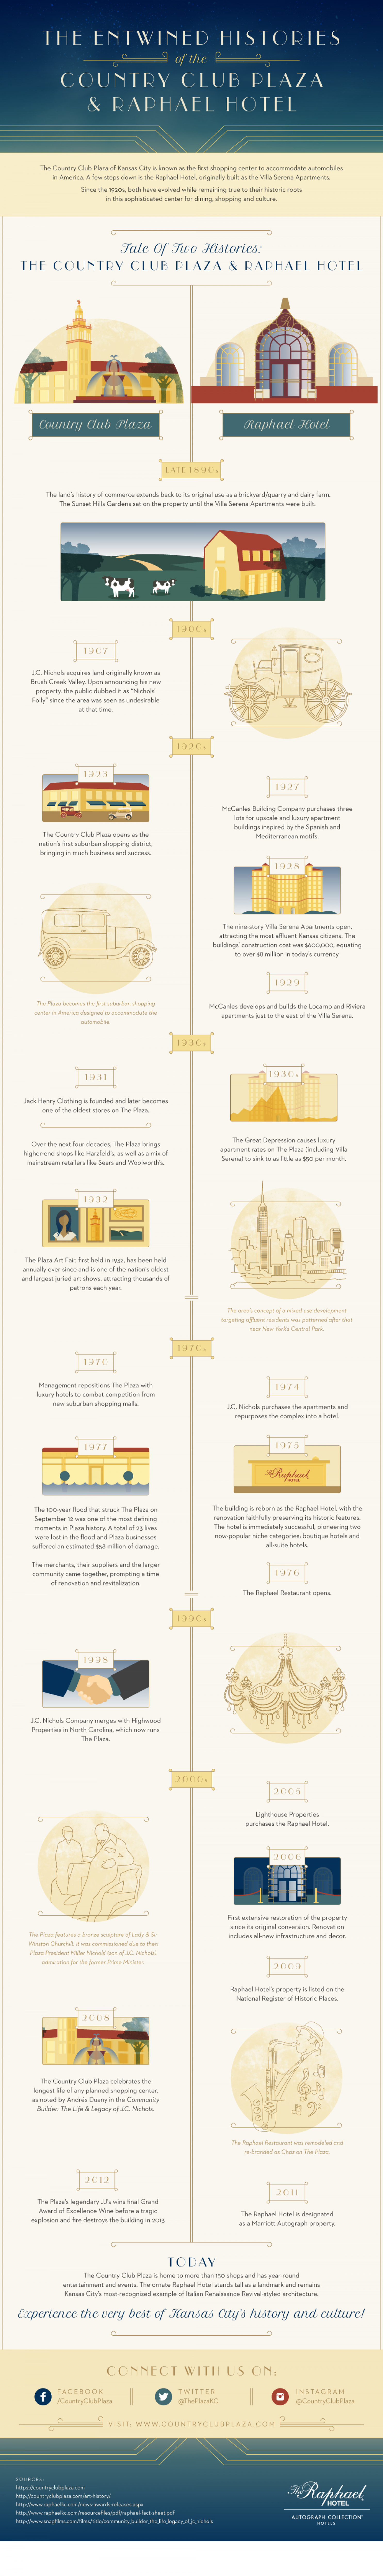 The Entwined Histories of the Country Club Plaza & Raphael Hotel Infographic